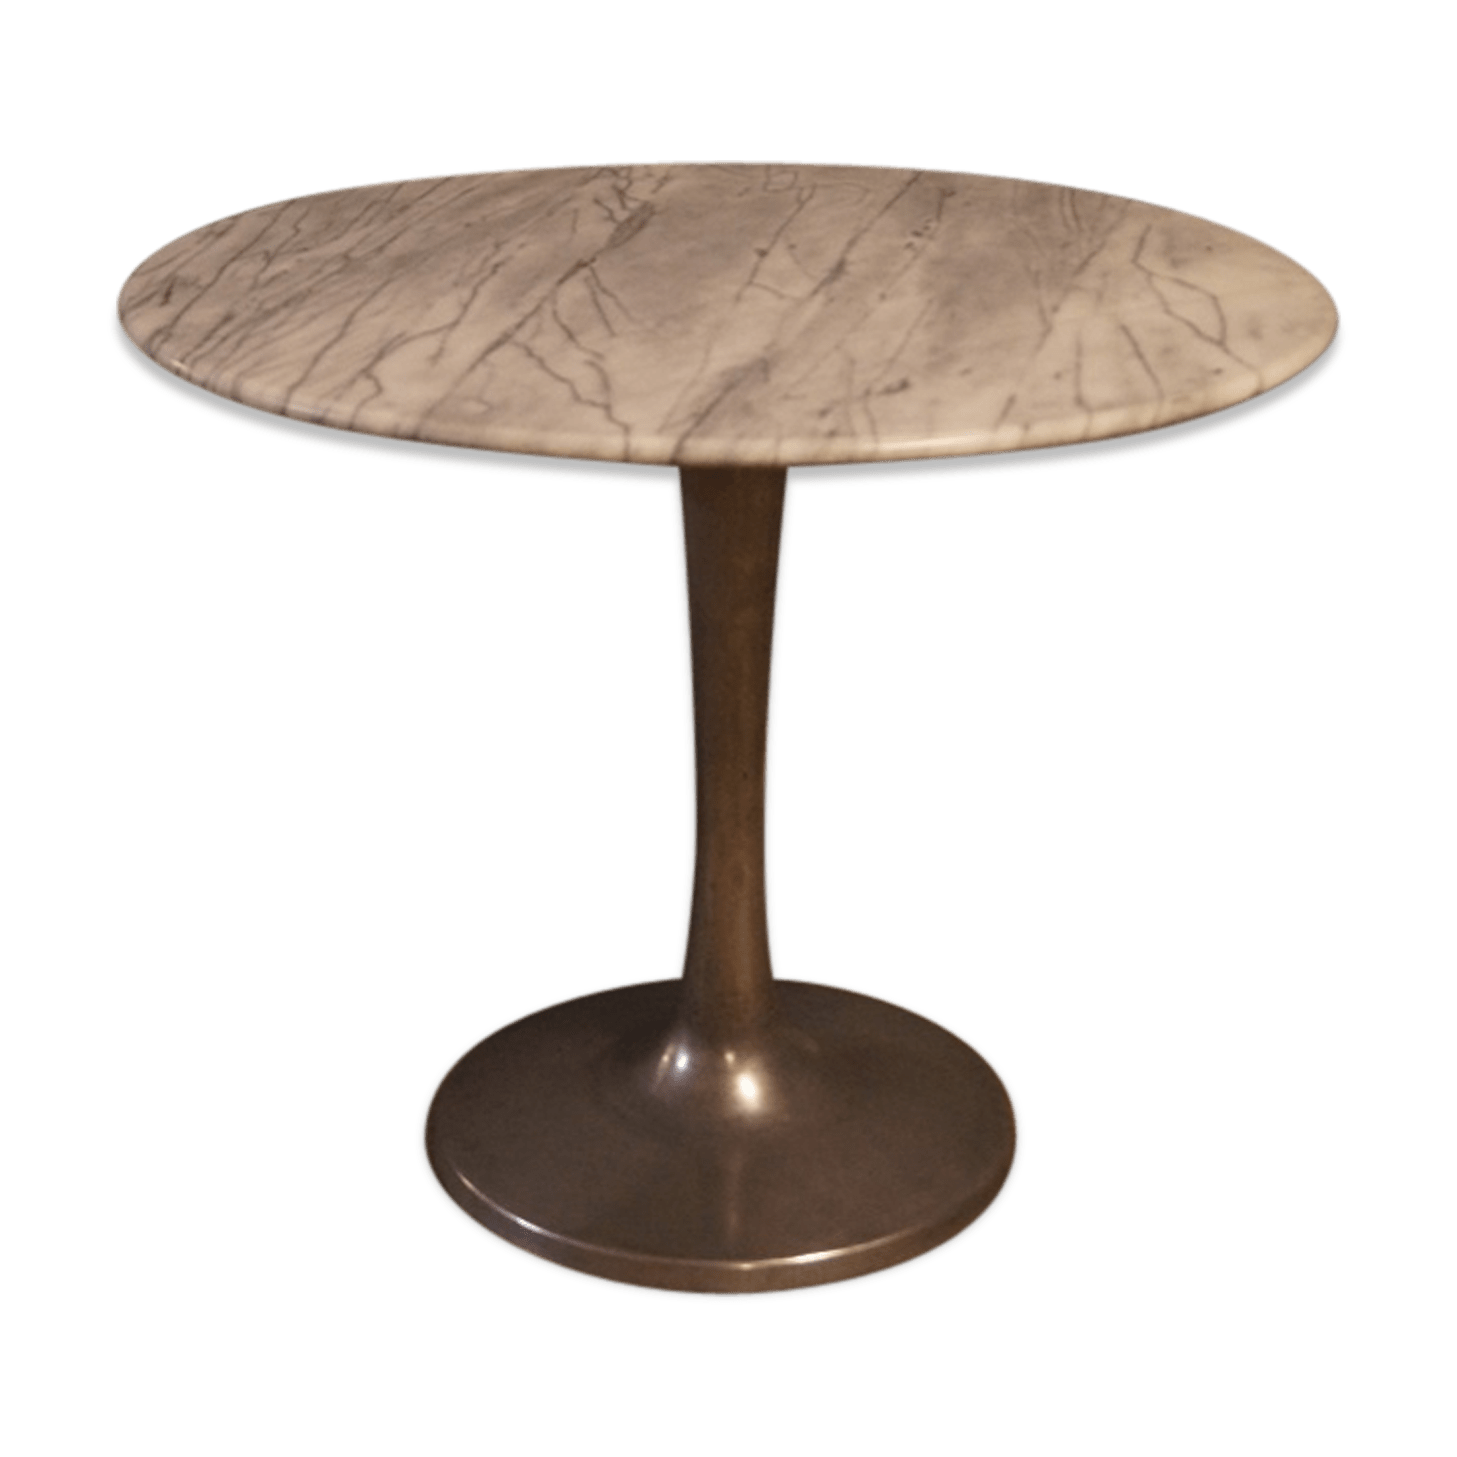 Table Ovale Tulipe Finest Elegant Table Pitement Tulipe En Marbre Design With